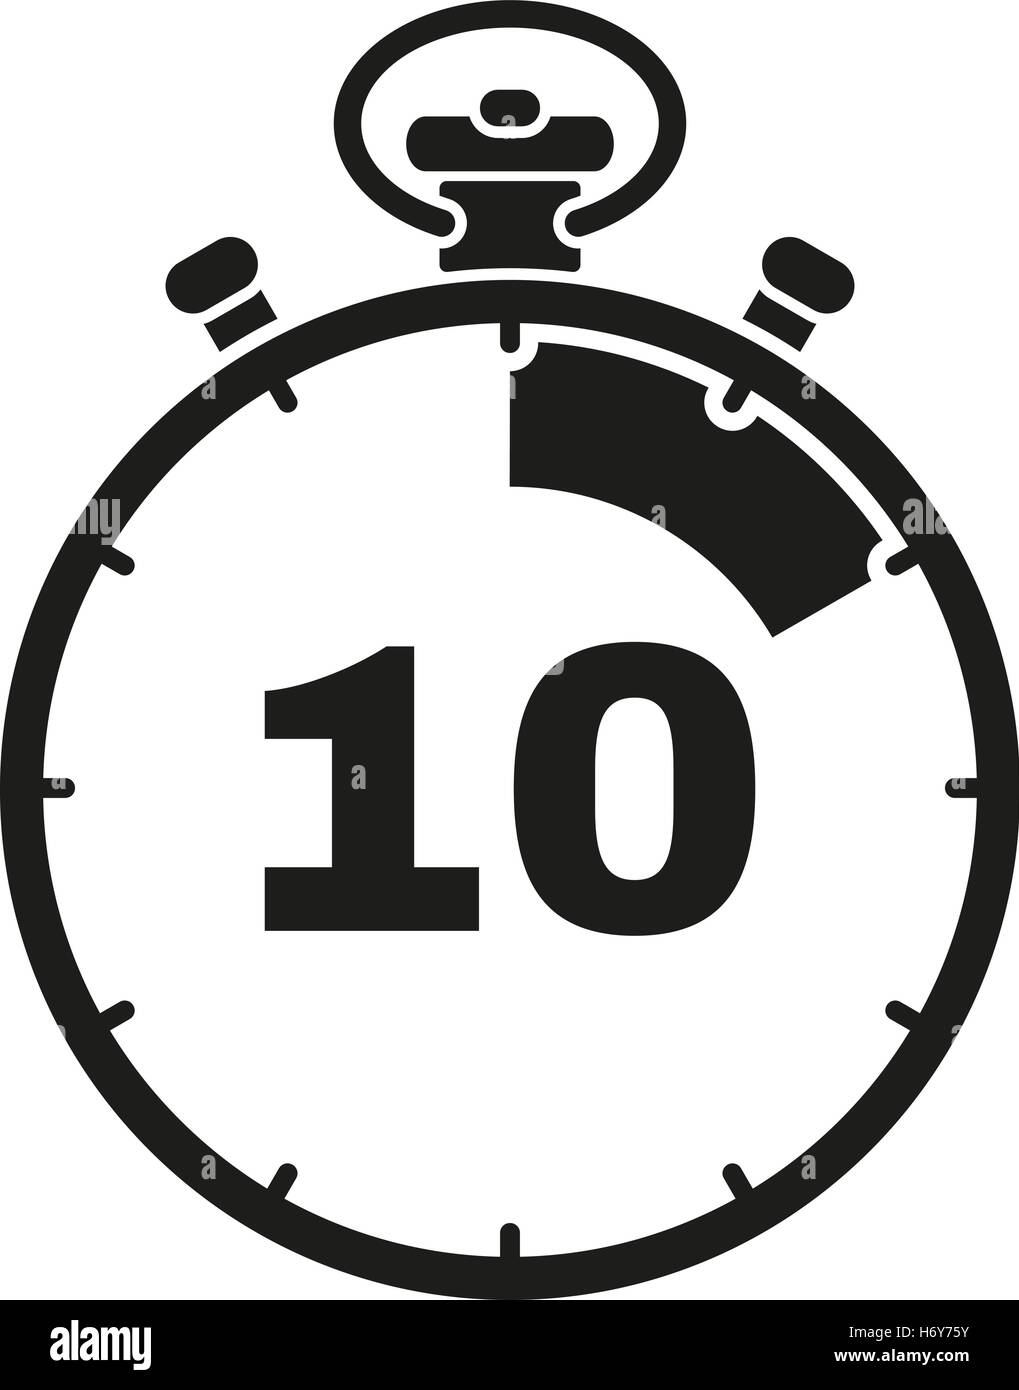 the 10 seconds minutes stopwatch icon clock and watch timer countdown symbol ui web logo sign flat design app stock v